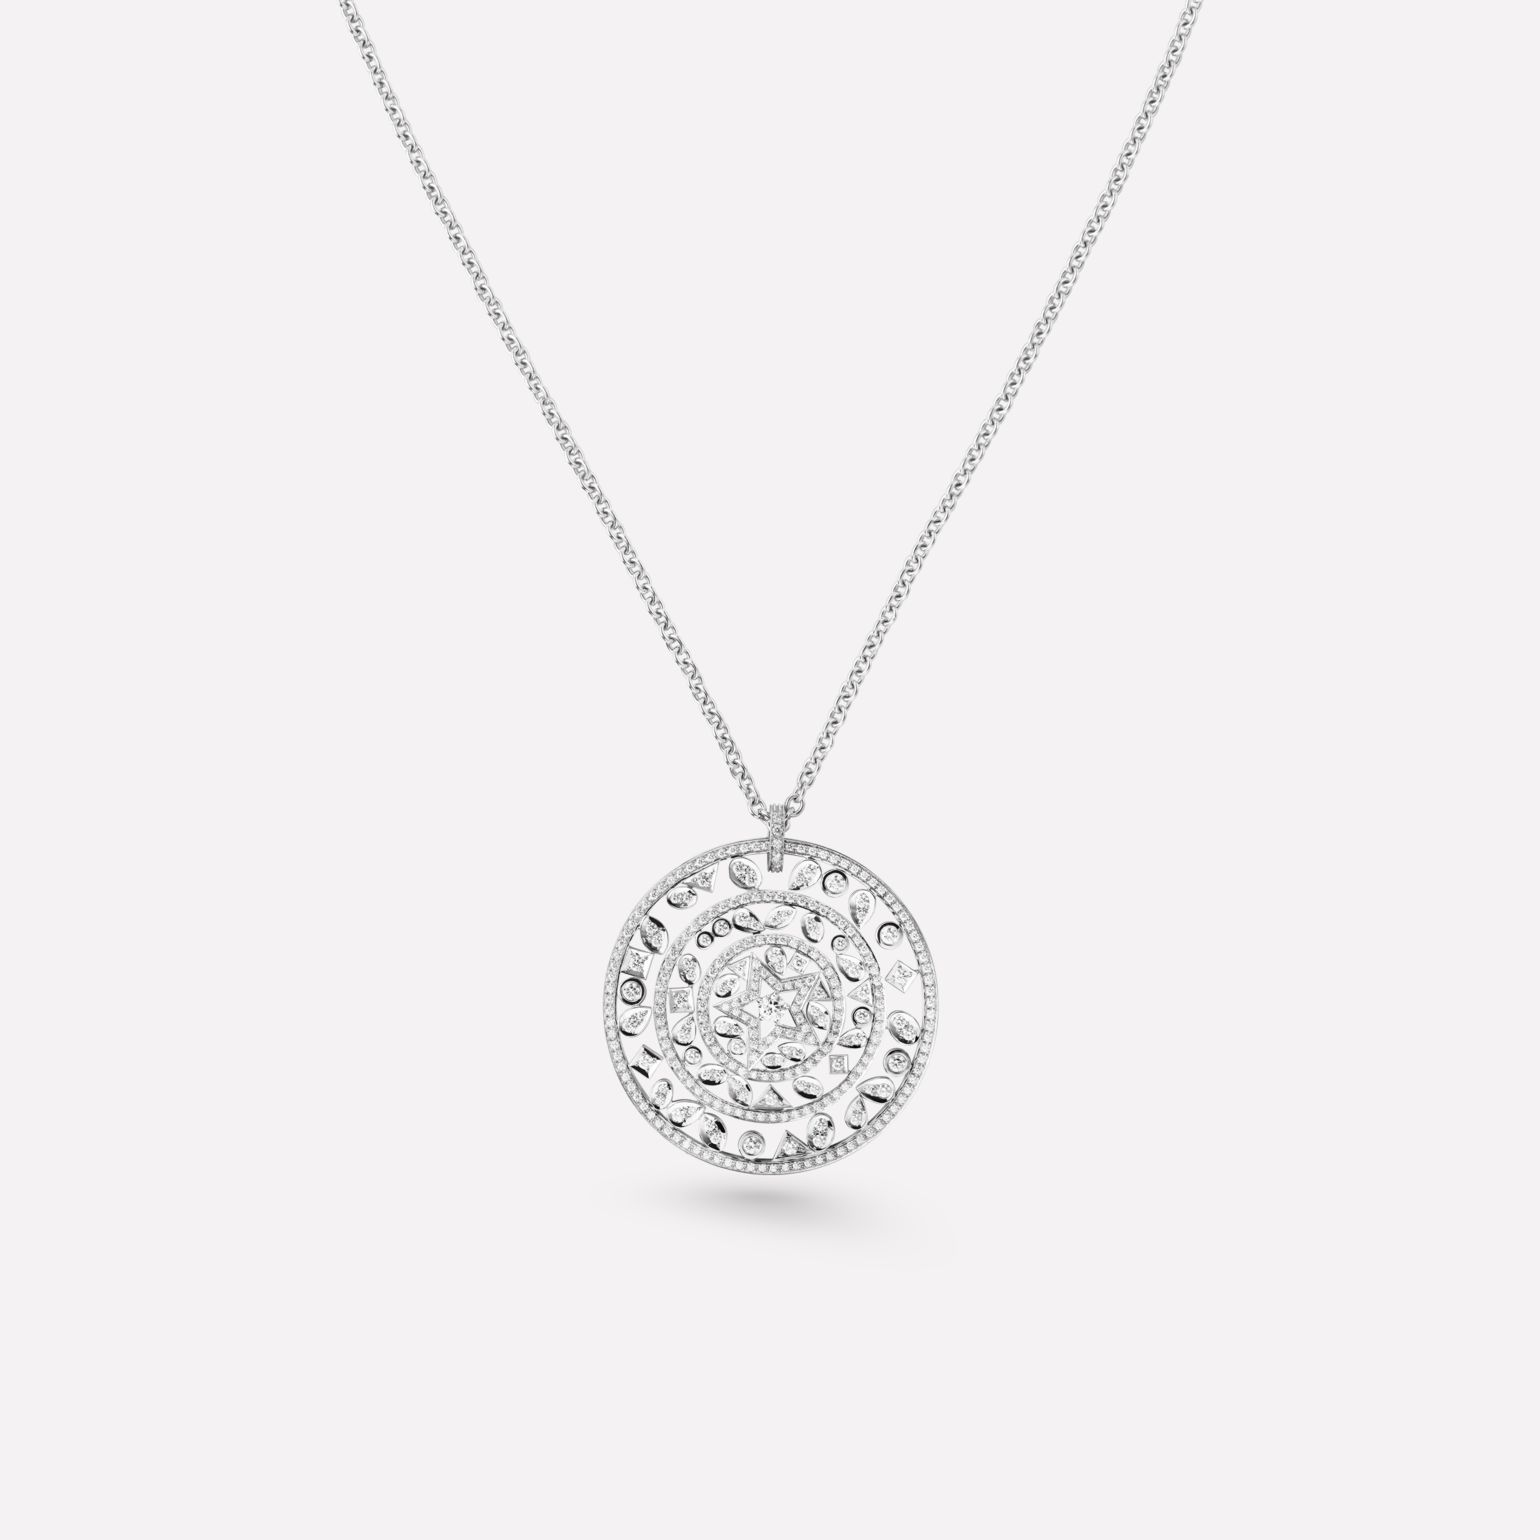 Comète Necklace Medallion star necklace in 18K white gold, diamonds and central diamond